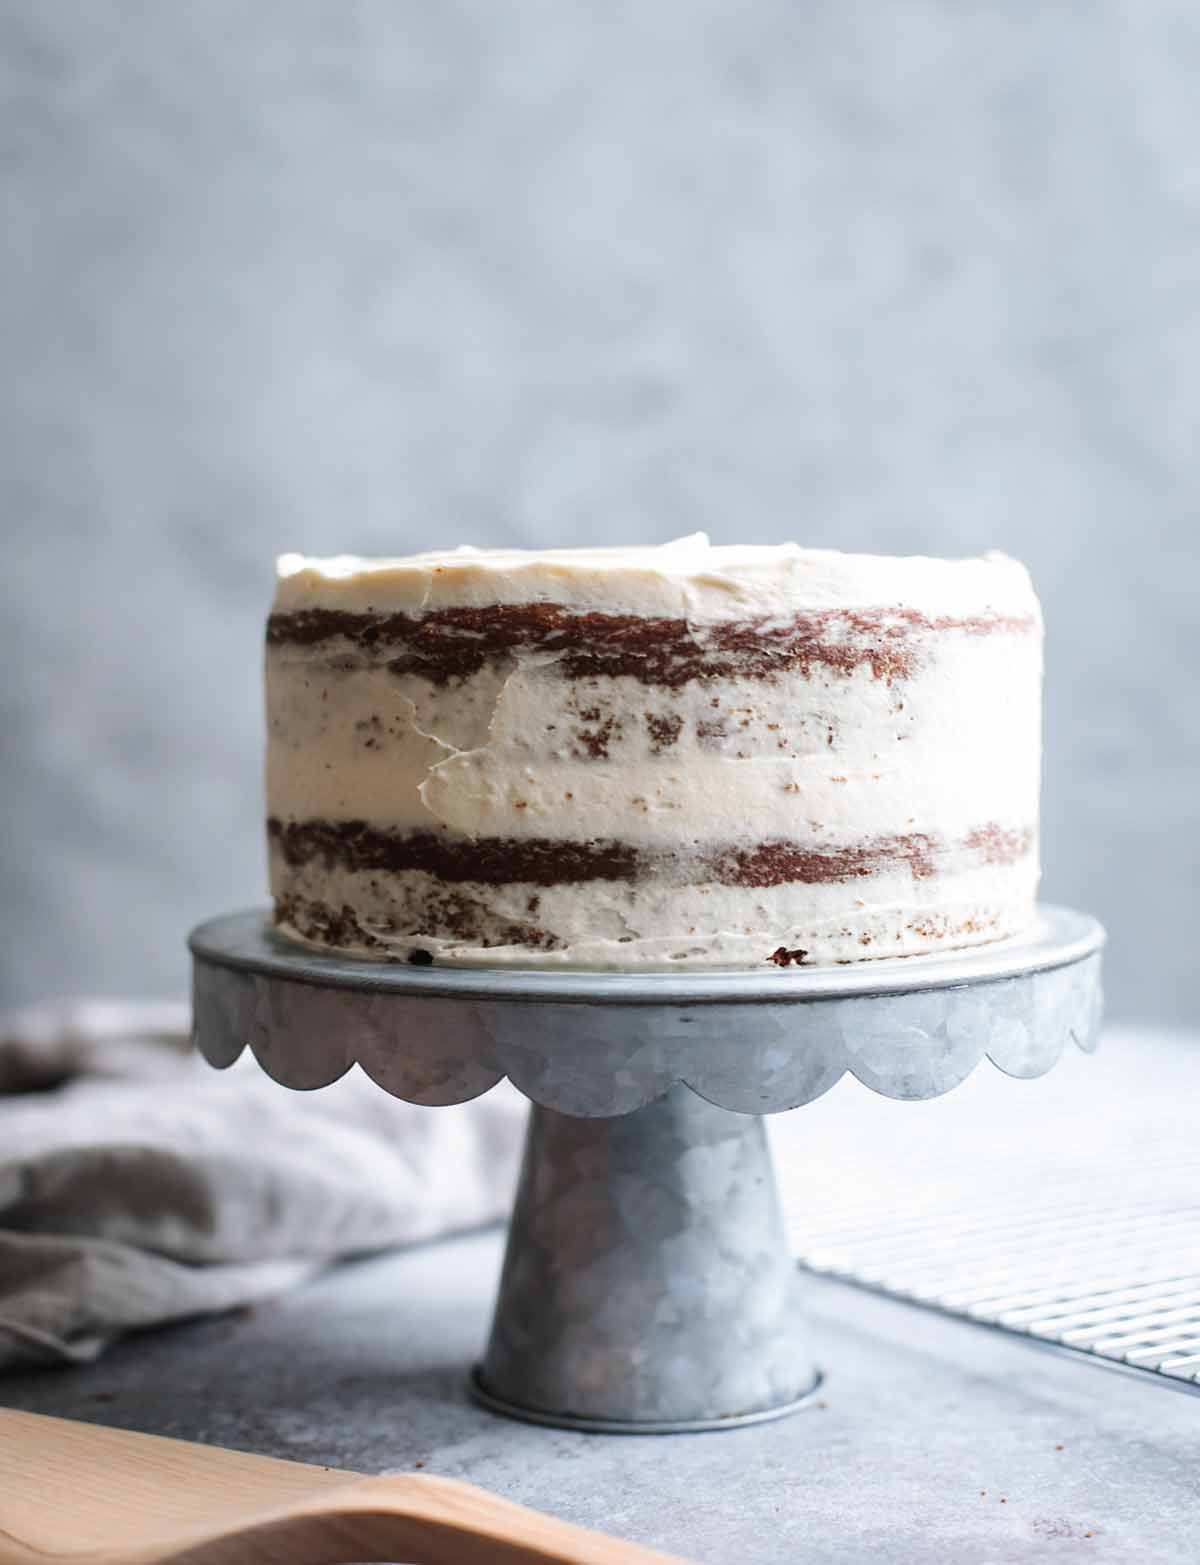 A double layer cake on a cake stand frosted in white chocolate-cream cheese frosting